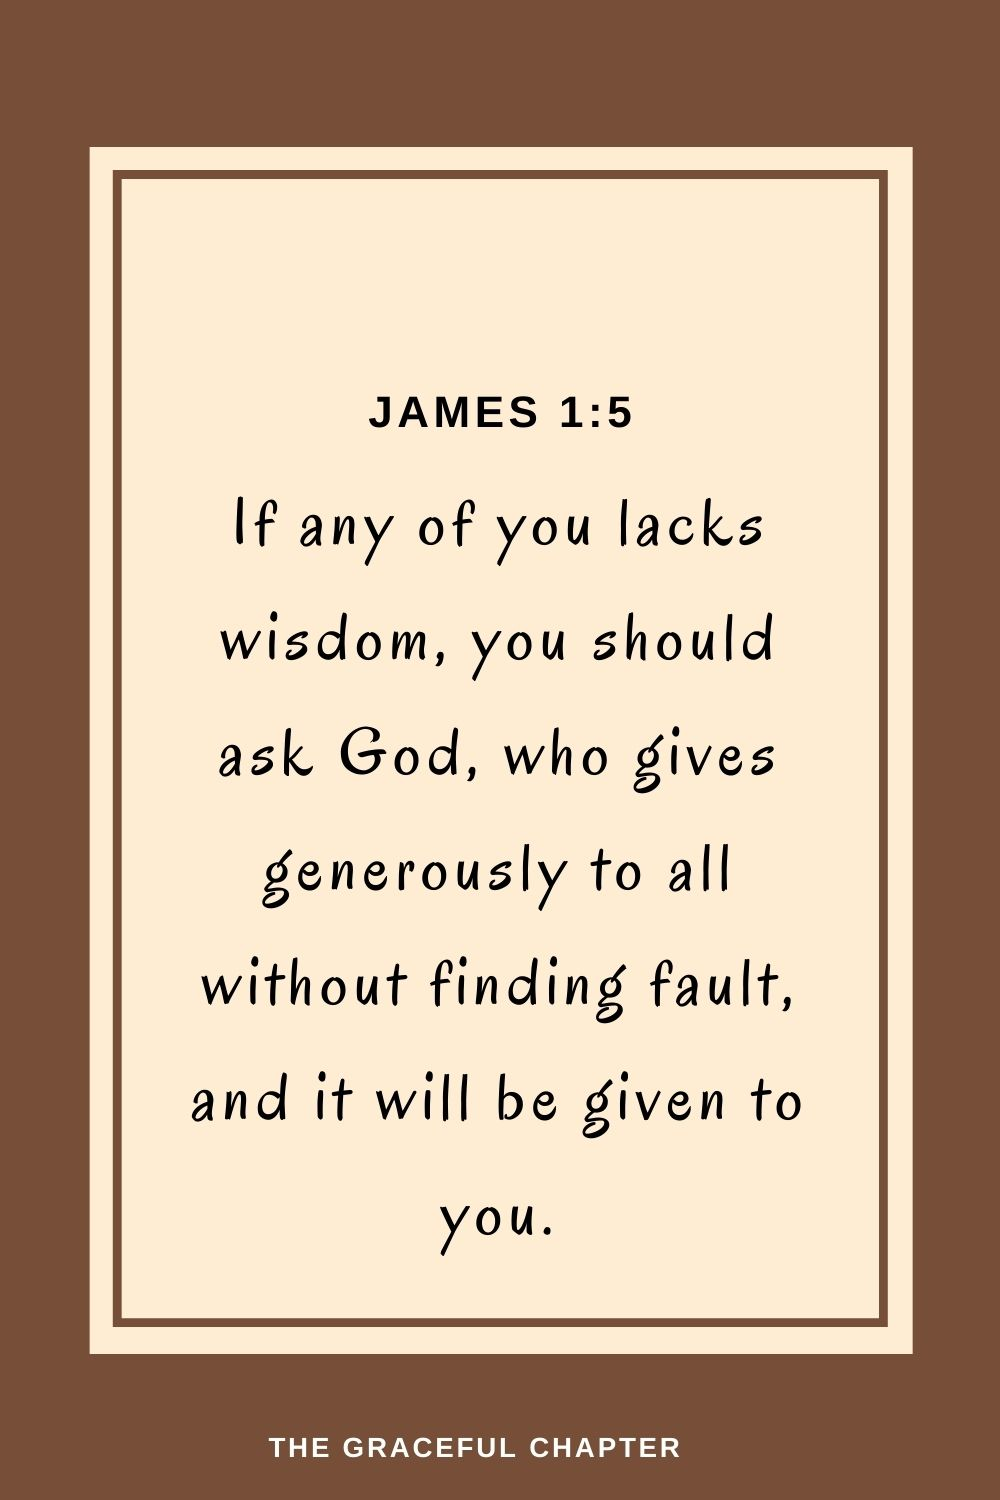 If any of you lacks wisdom, you should ask God,who gives generously to all without finding fault, and it will be given to you. James 1:5